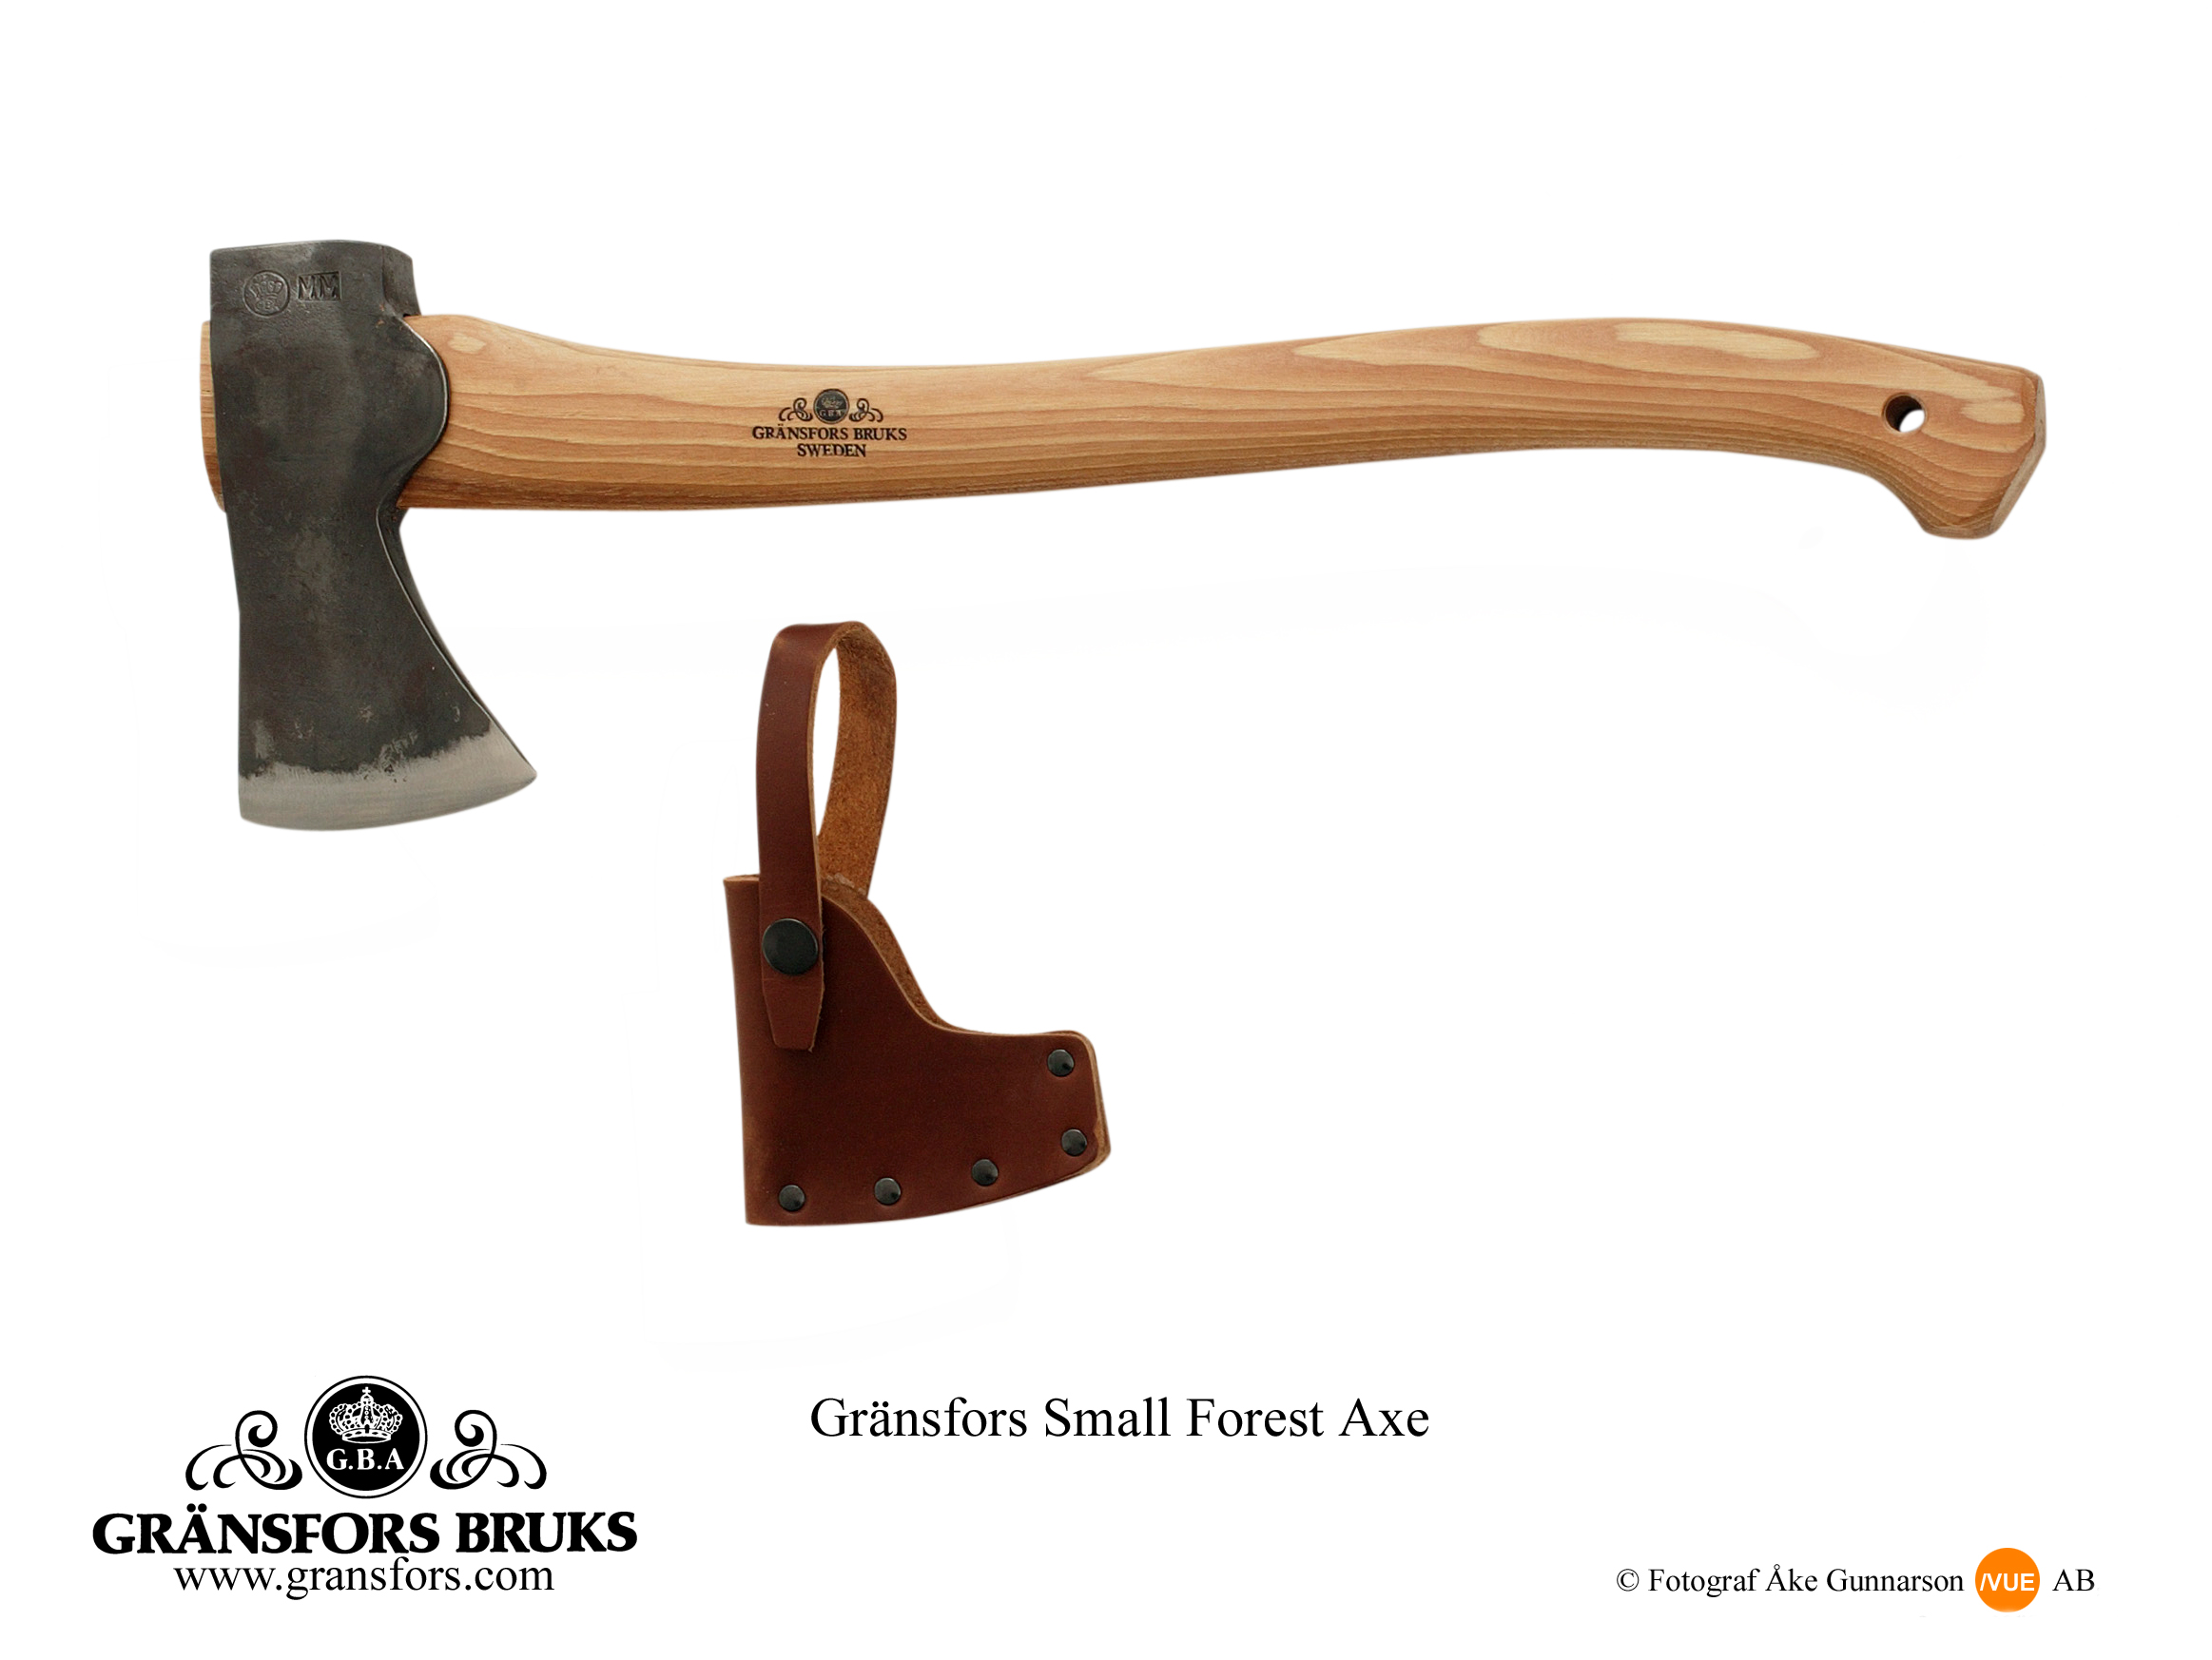 Small Forest Axe picture